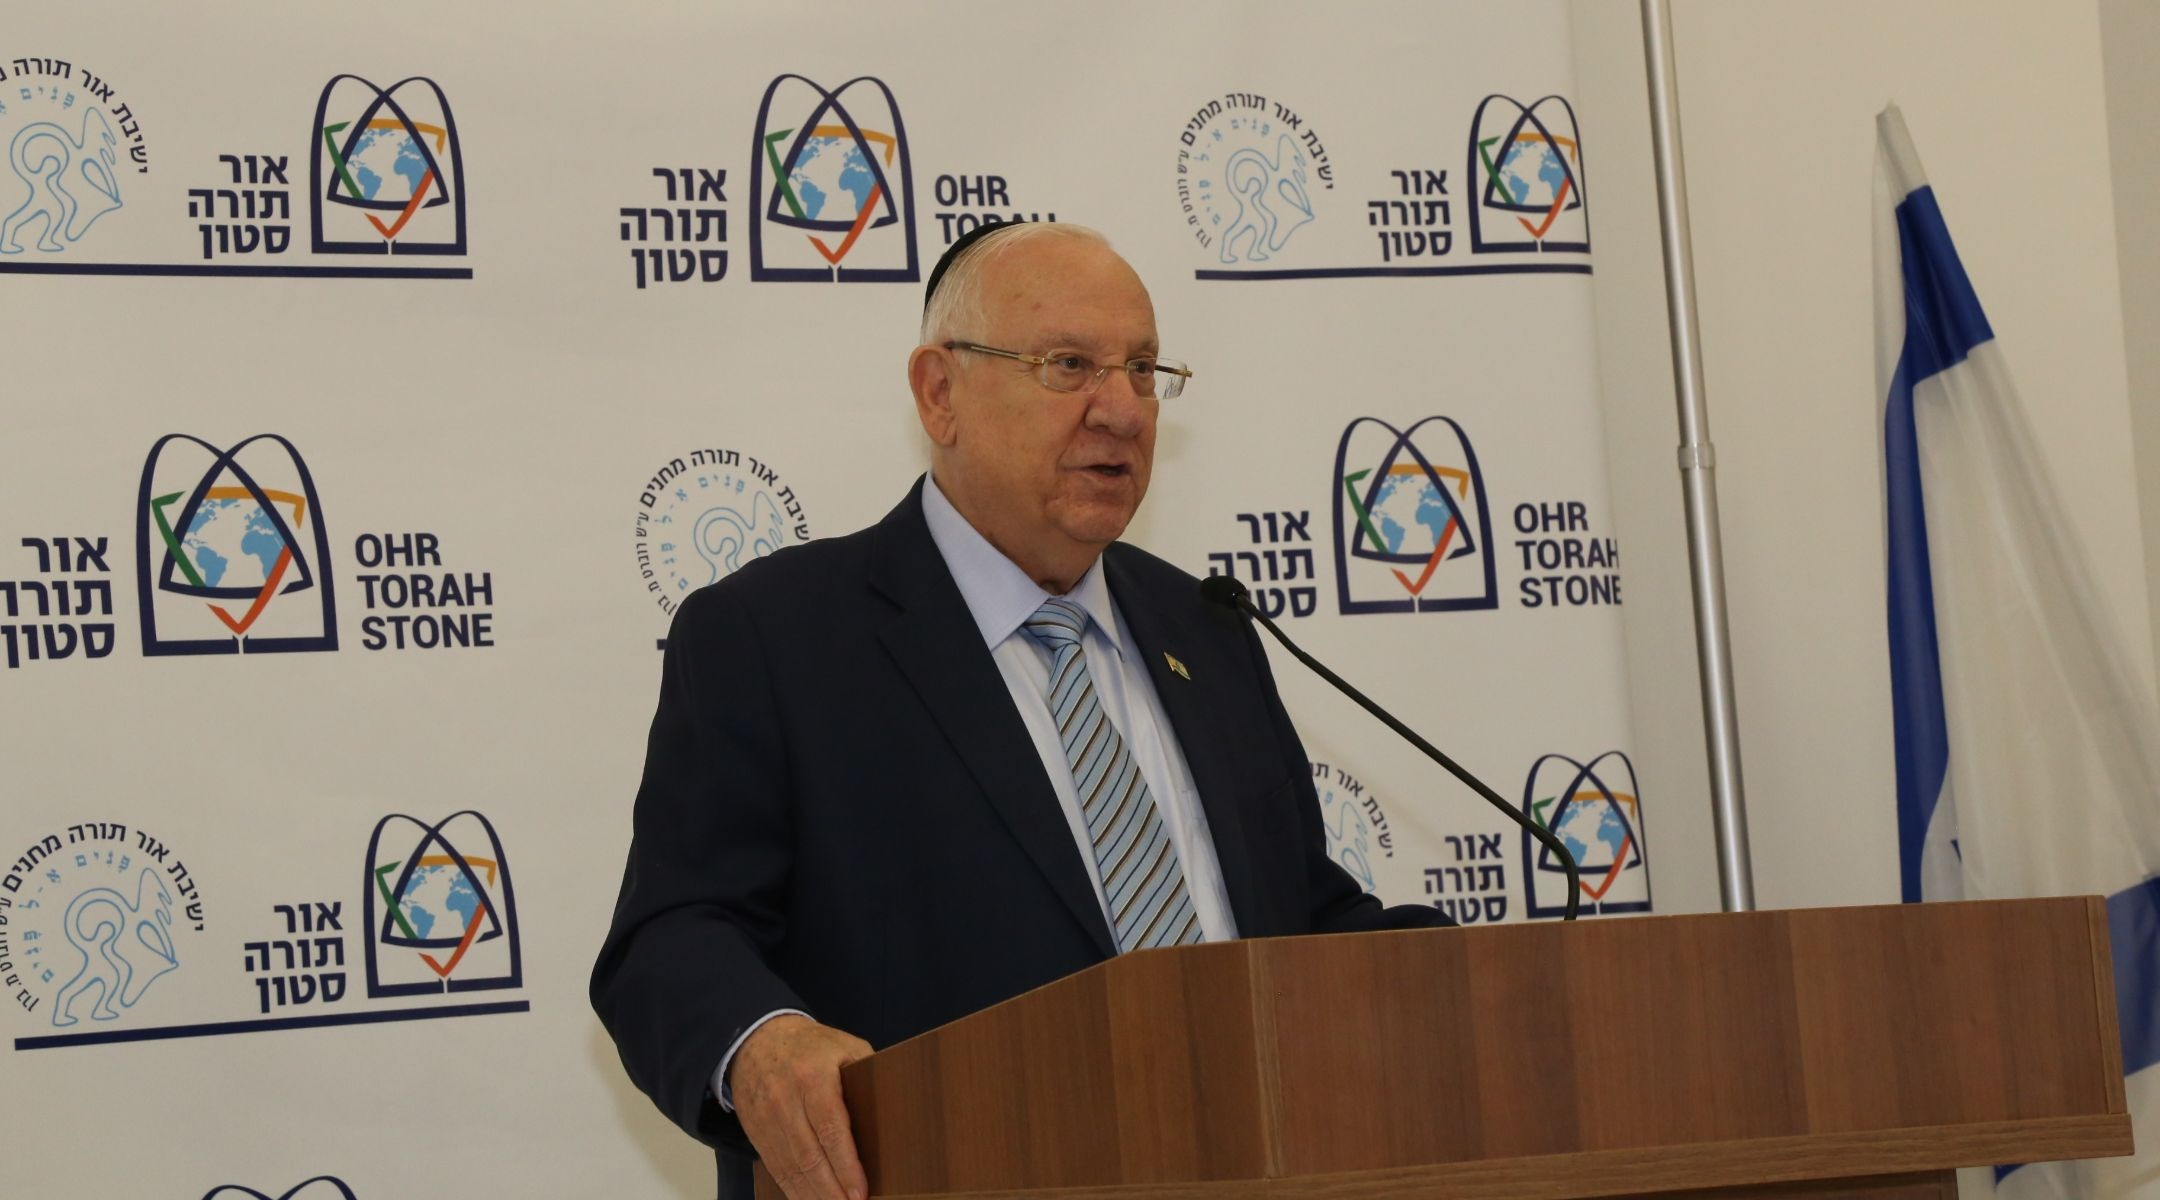 Israeli President Reuven Rivlin urges end to 'verbal violence' in annexation debate